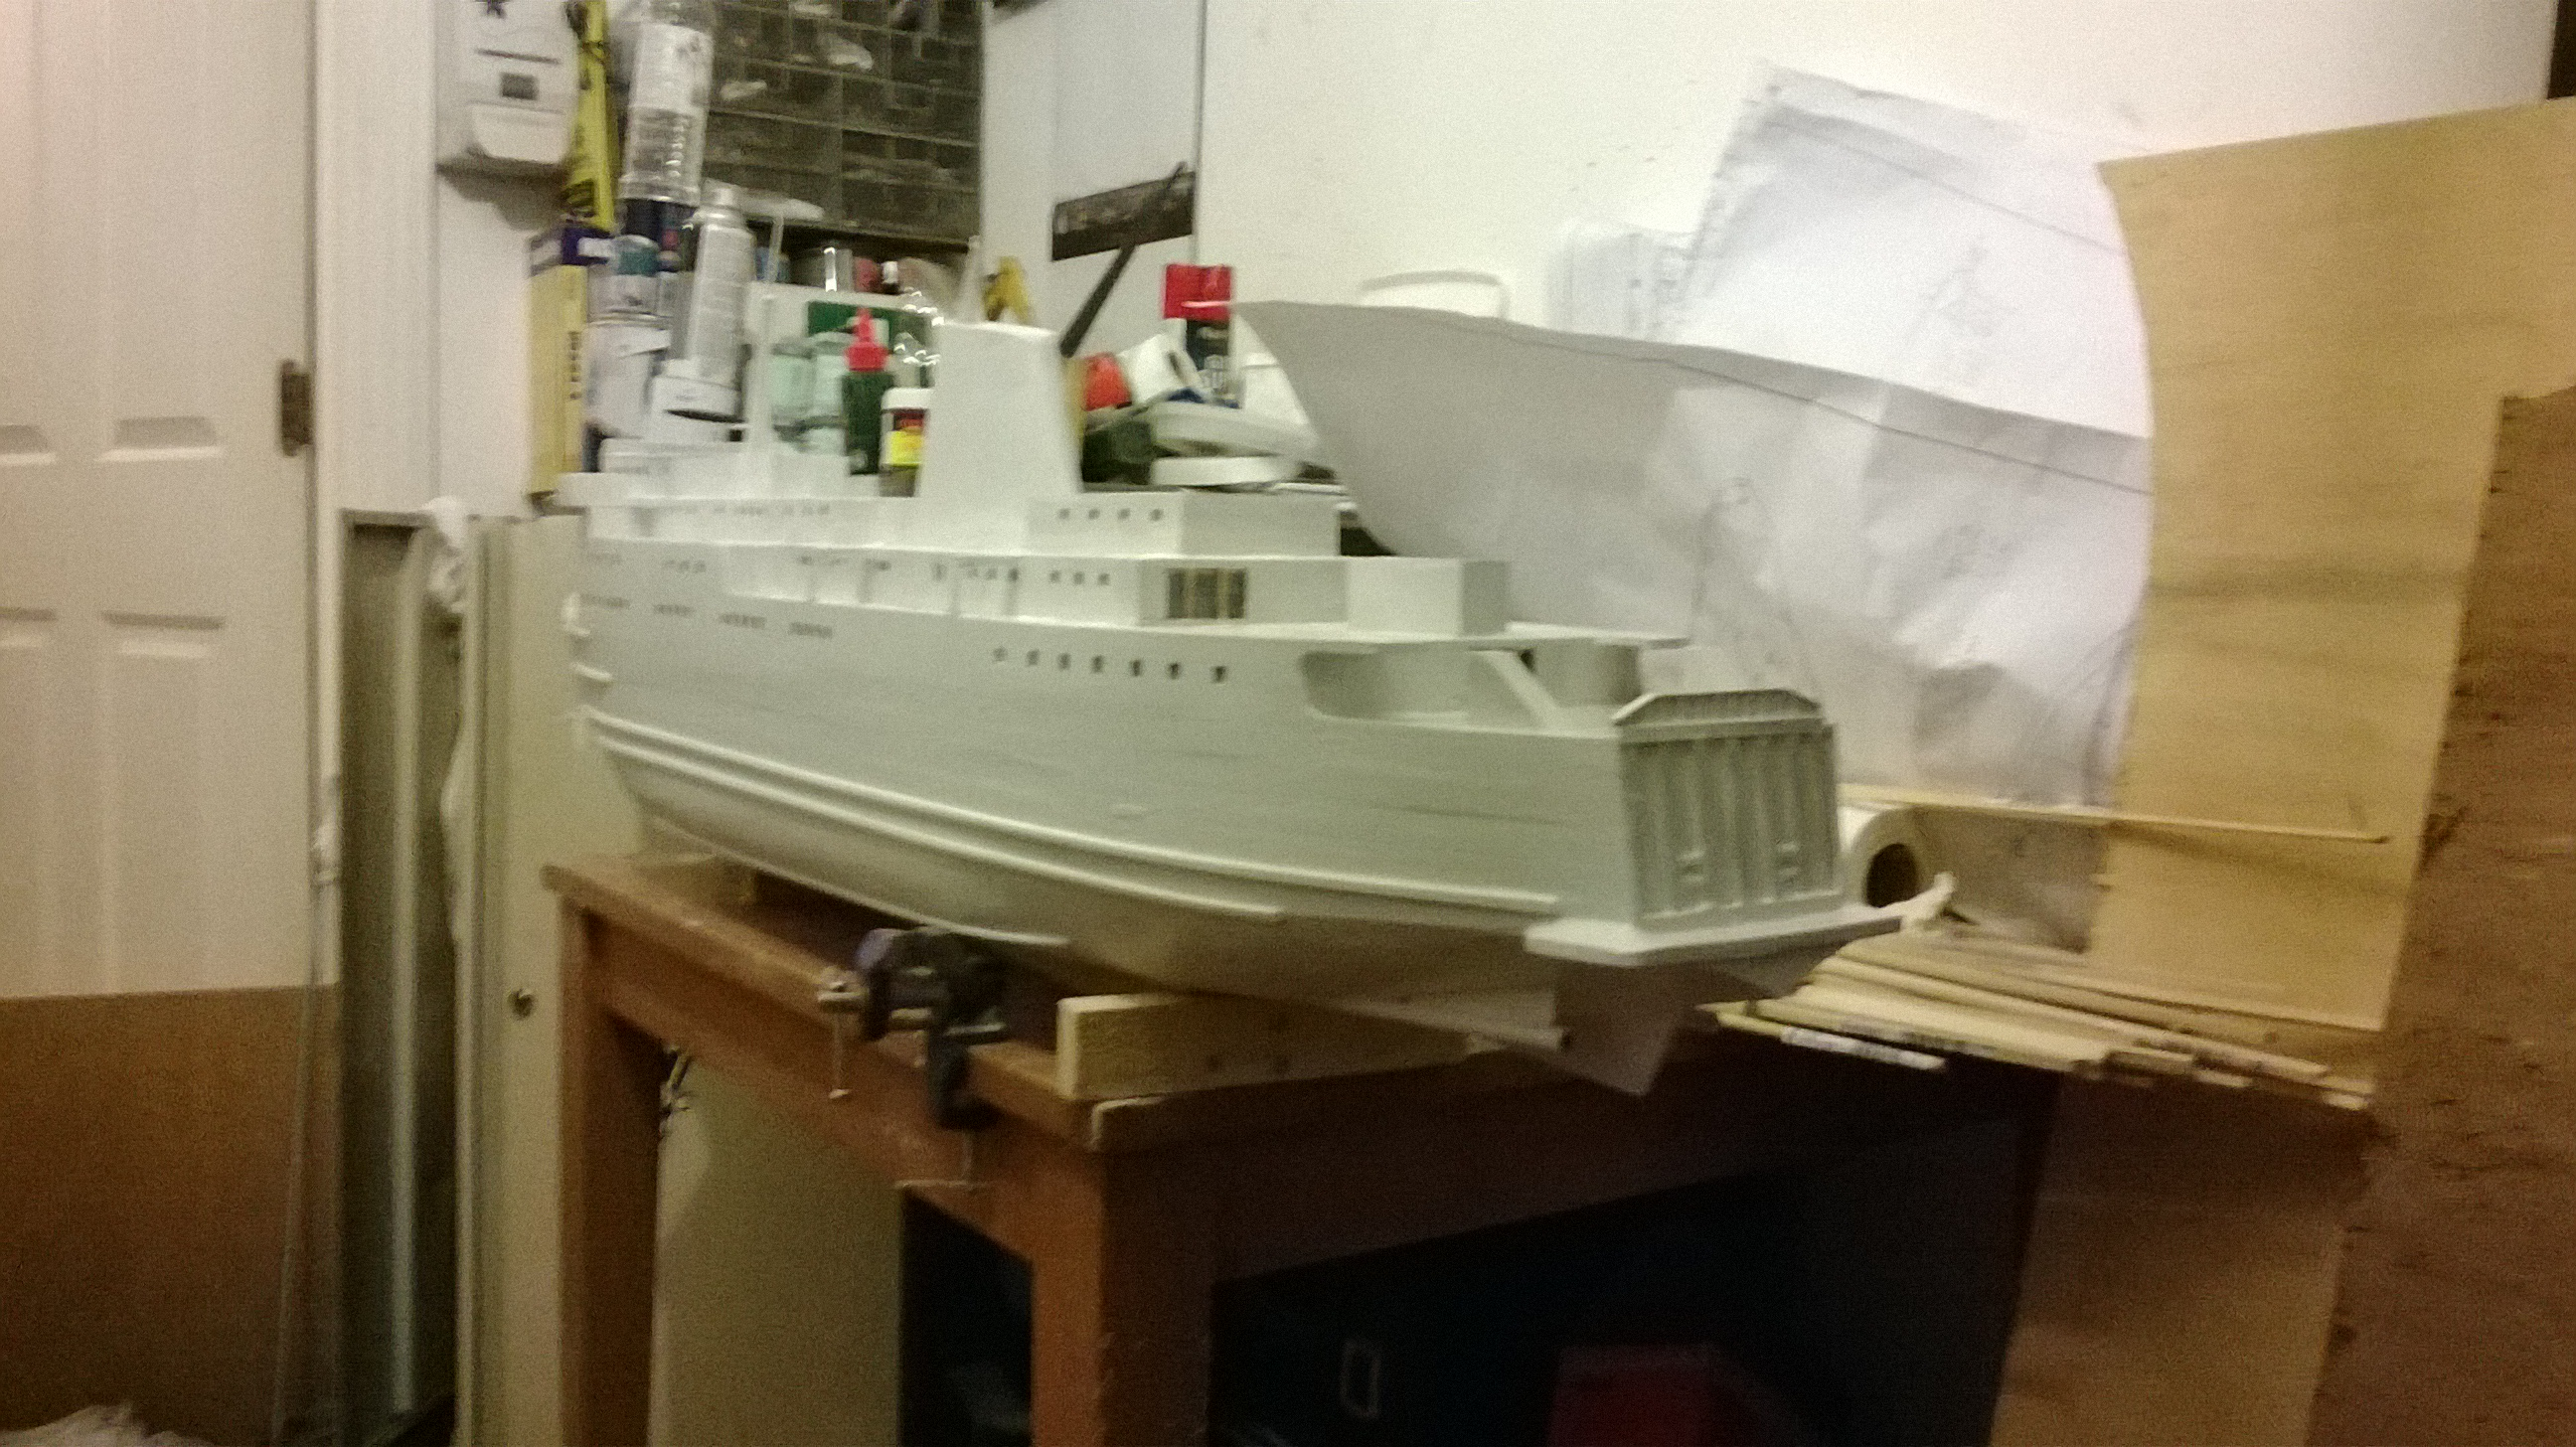 King Orry 5 in primer from stern